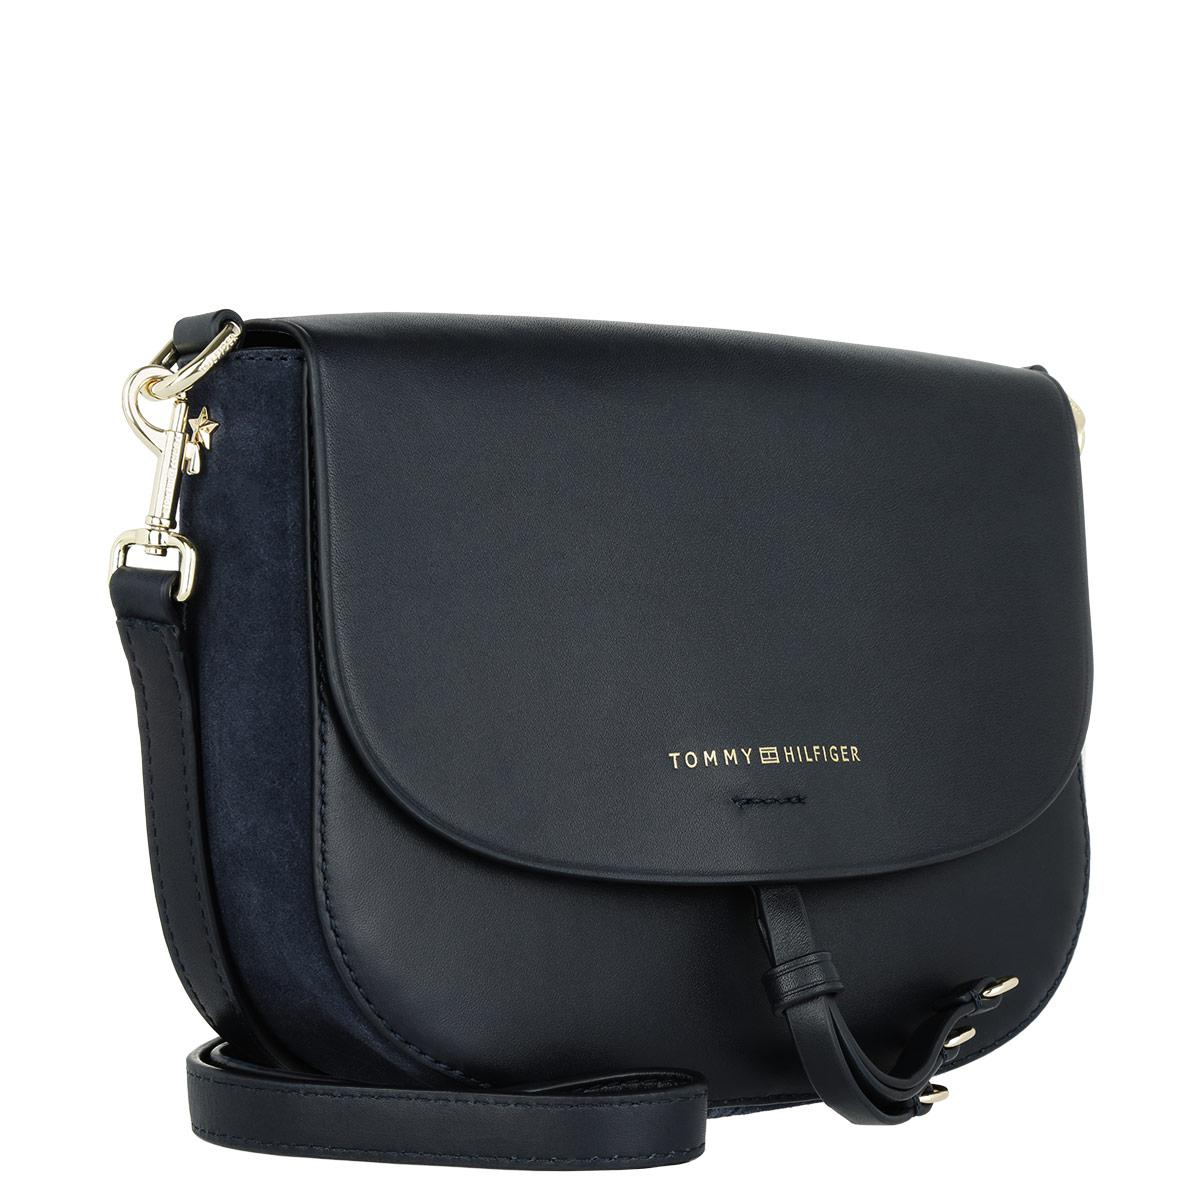 3c589ca2f297 Tommy Hilfiger Effortless Crossover Leather Crossbody Bag Navy in ...